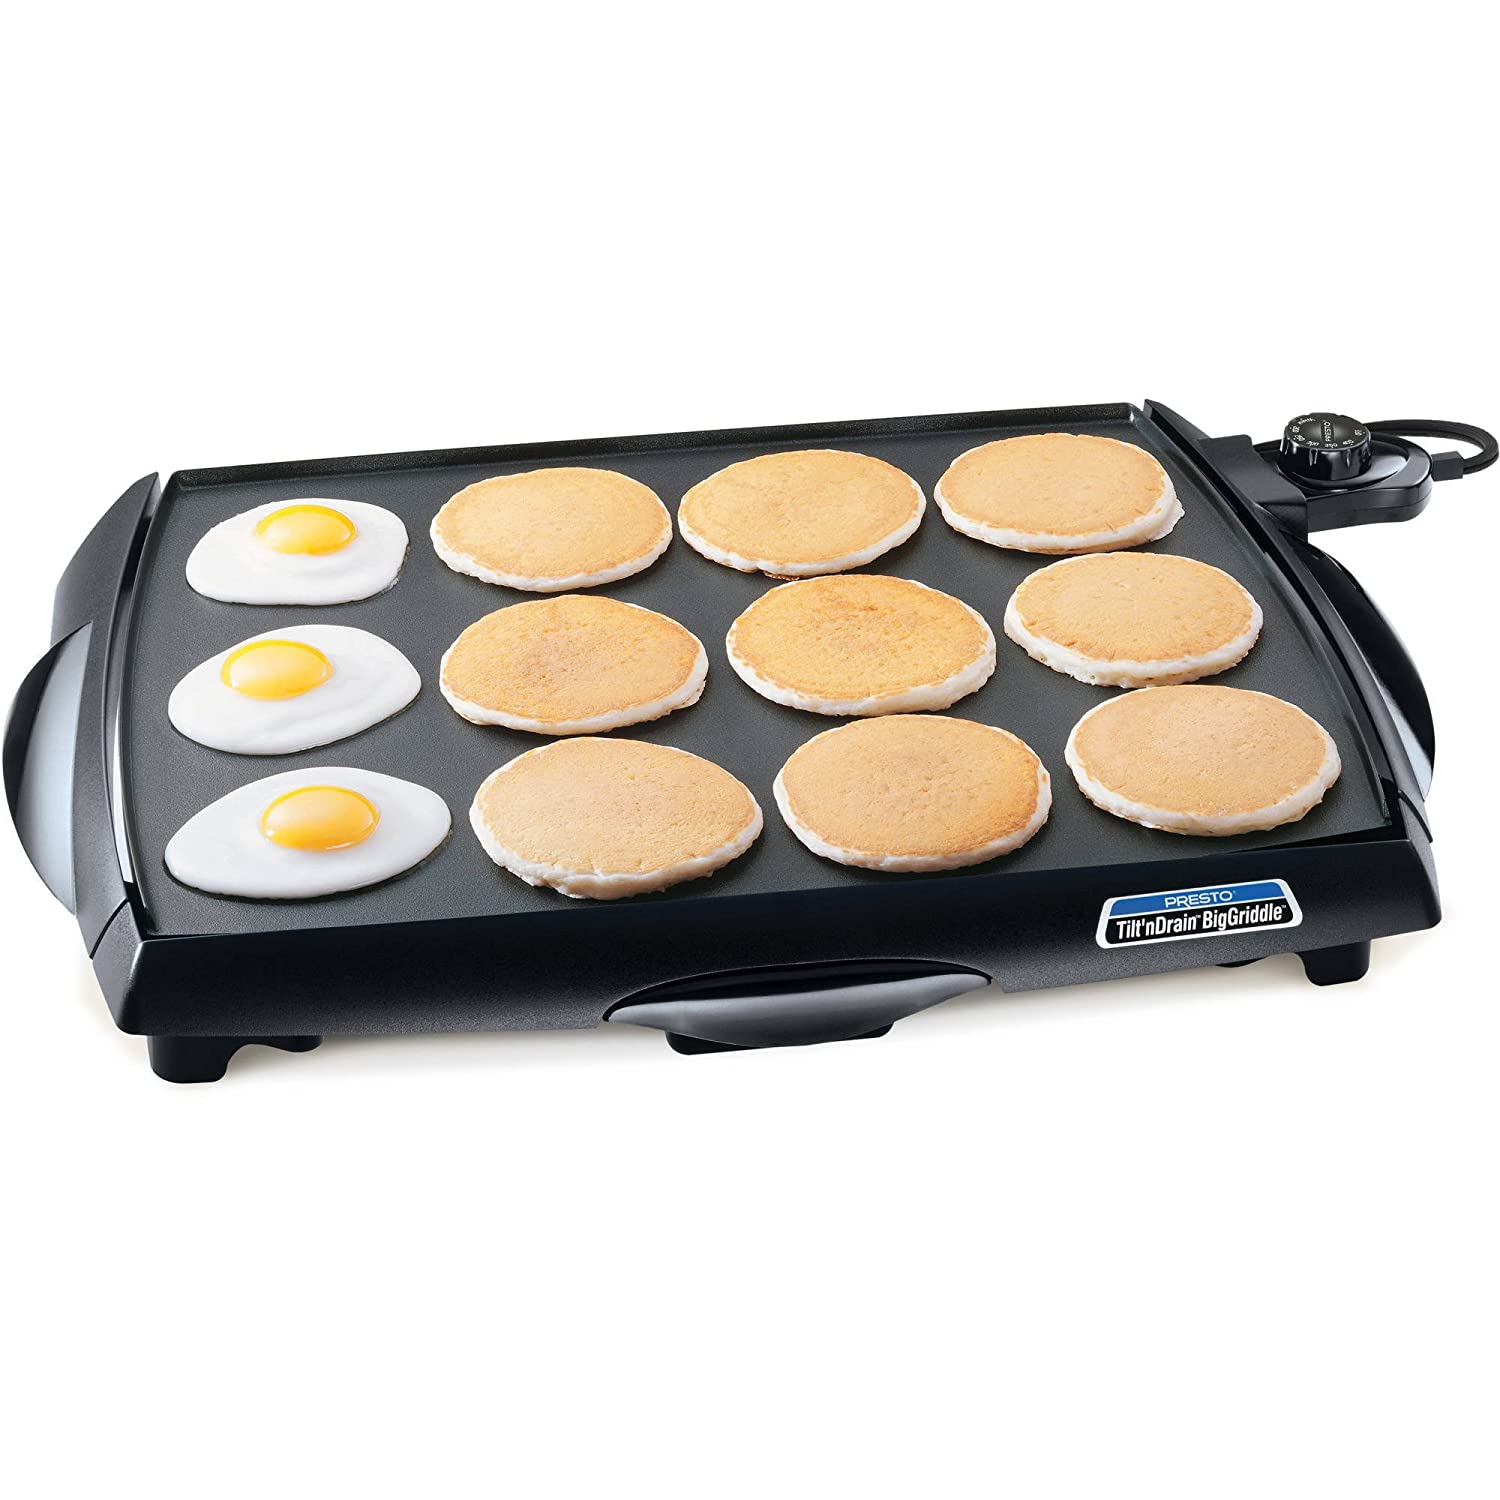 Presto Big Indoor Outdoor Griddle Cool Touch Easy to Use 7046